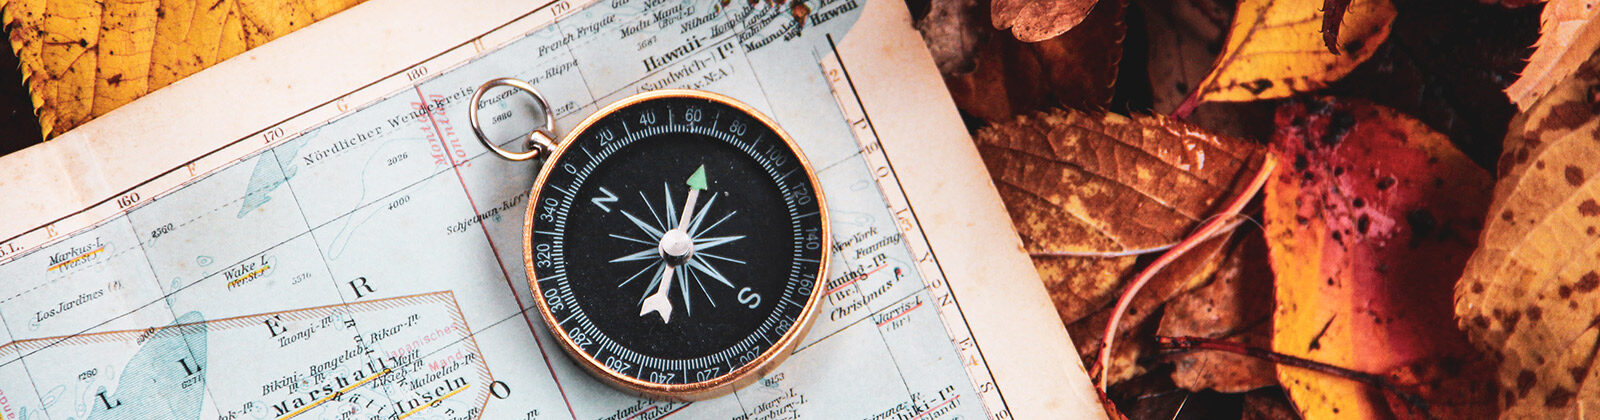 Compass laying on a map with fall leaves in the background